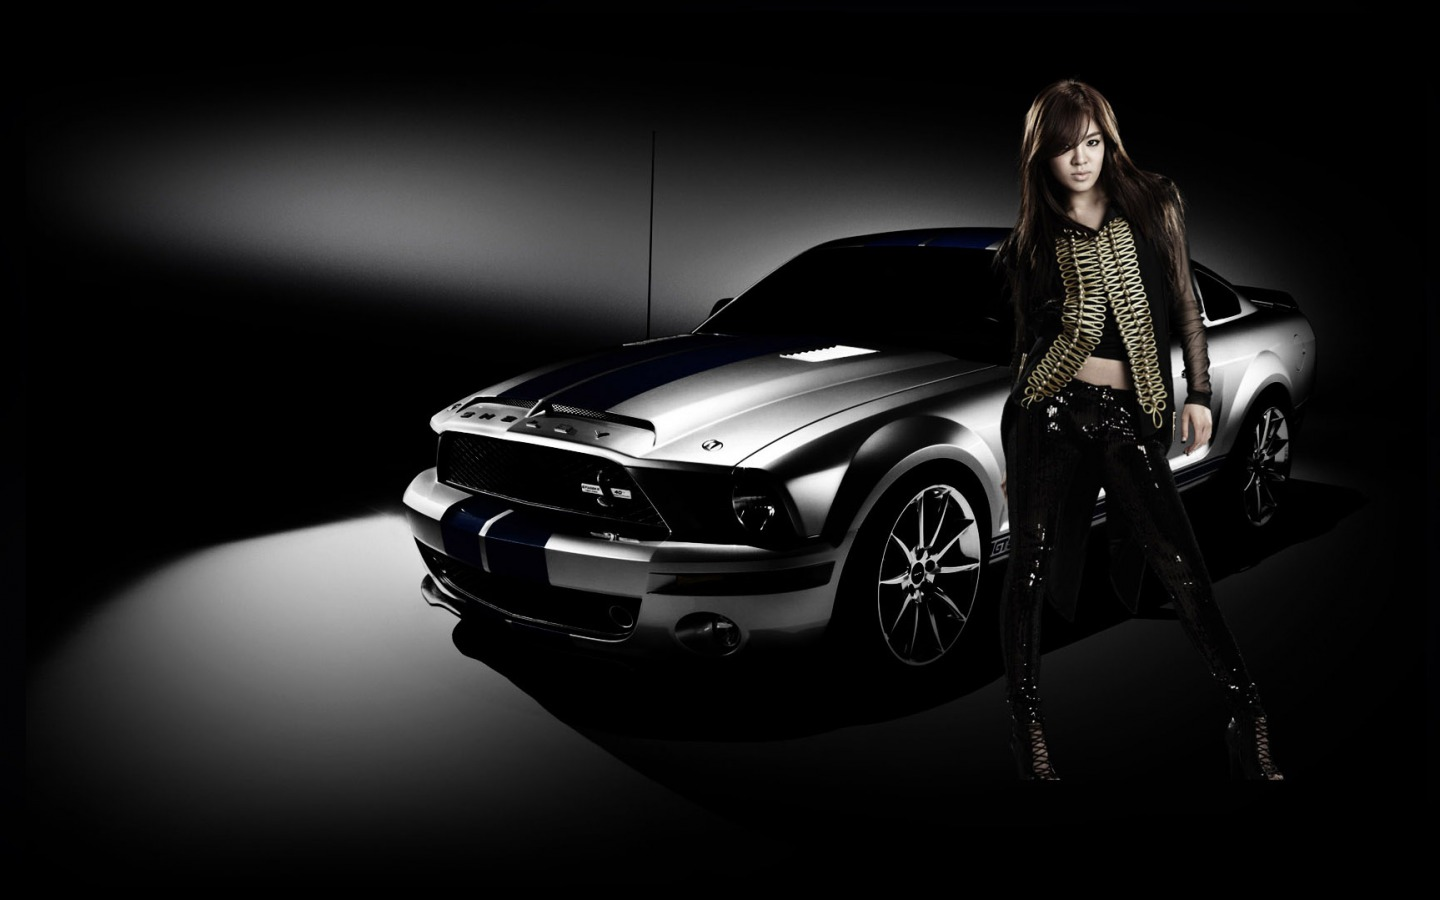 girls and tuner car - photo #37